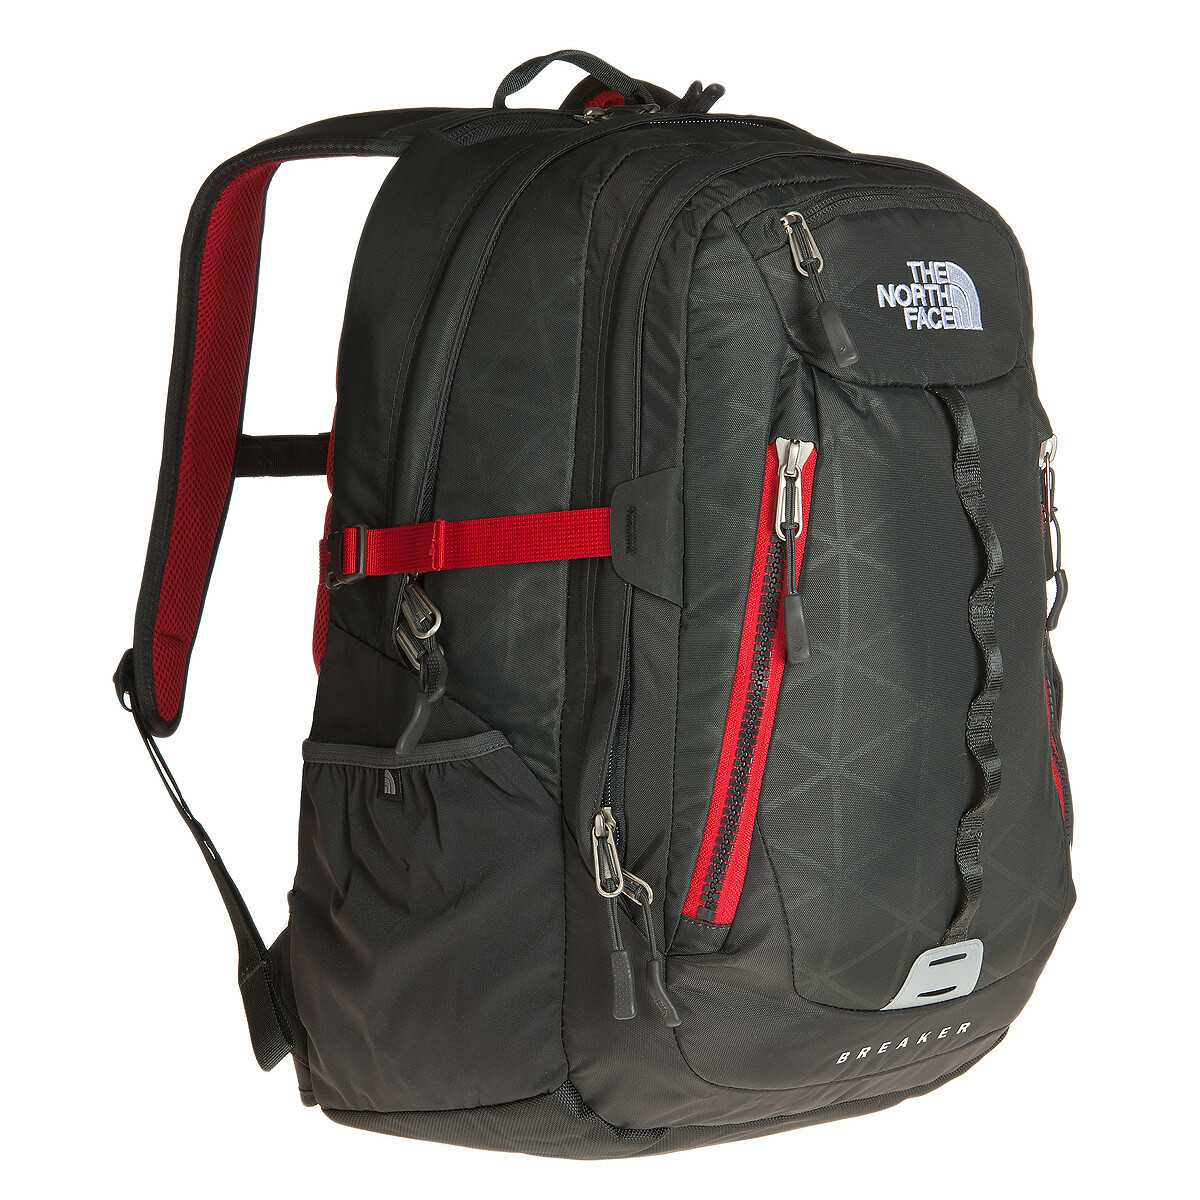 The North Face Surge II asphalt